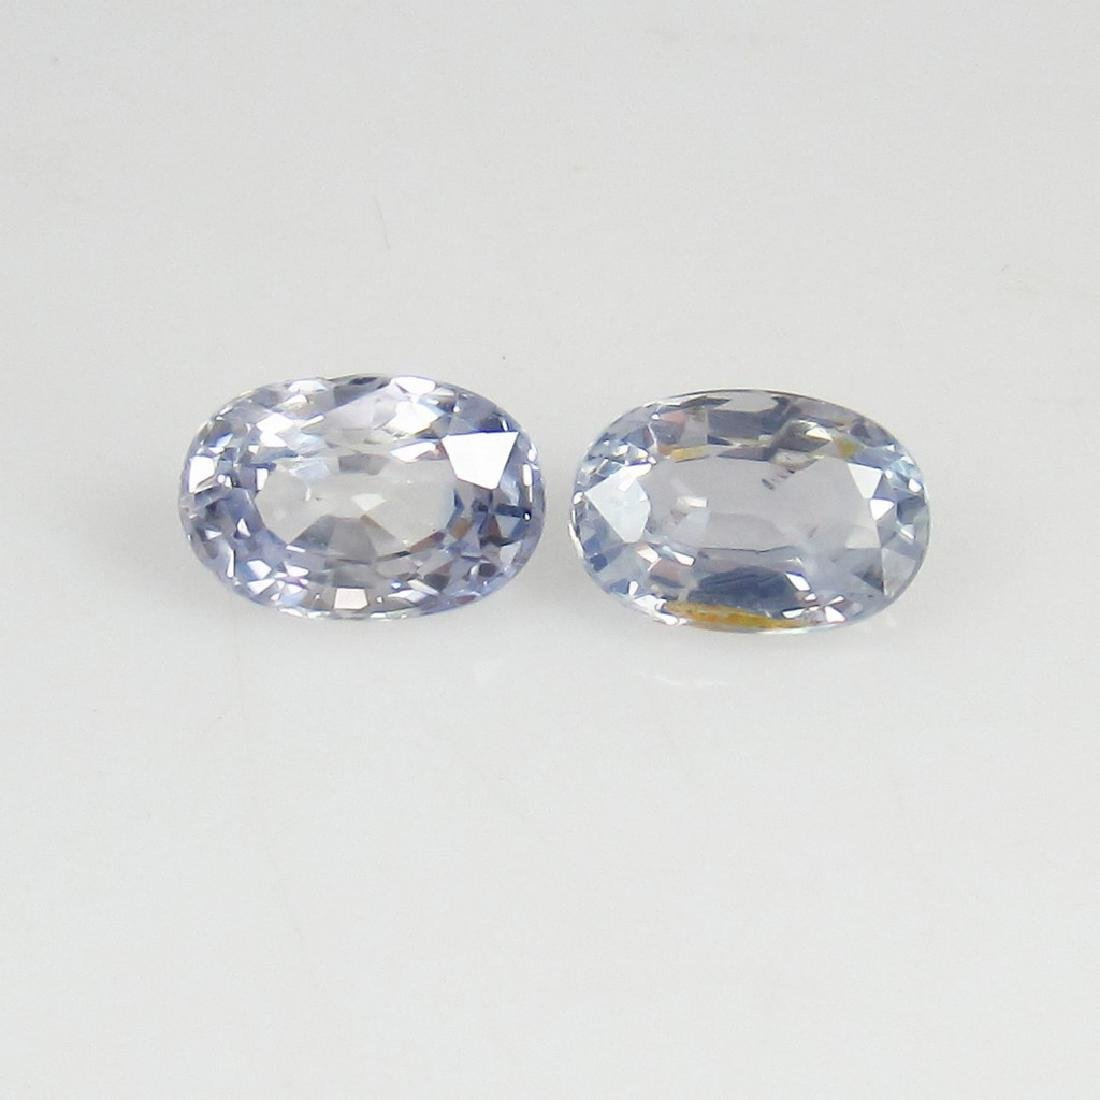 1.52 Ct Genuine Ceylon Very Light Blue Sapphire Oval